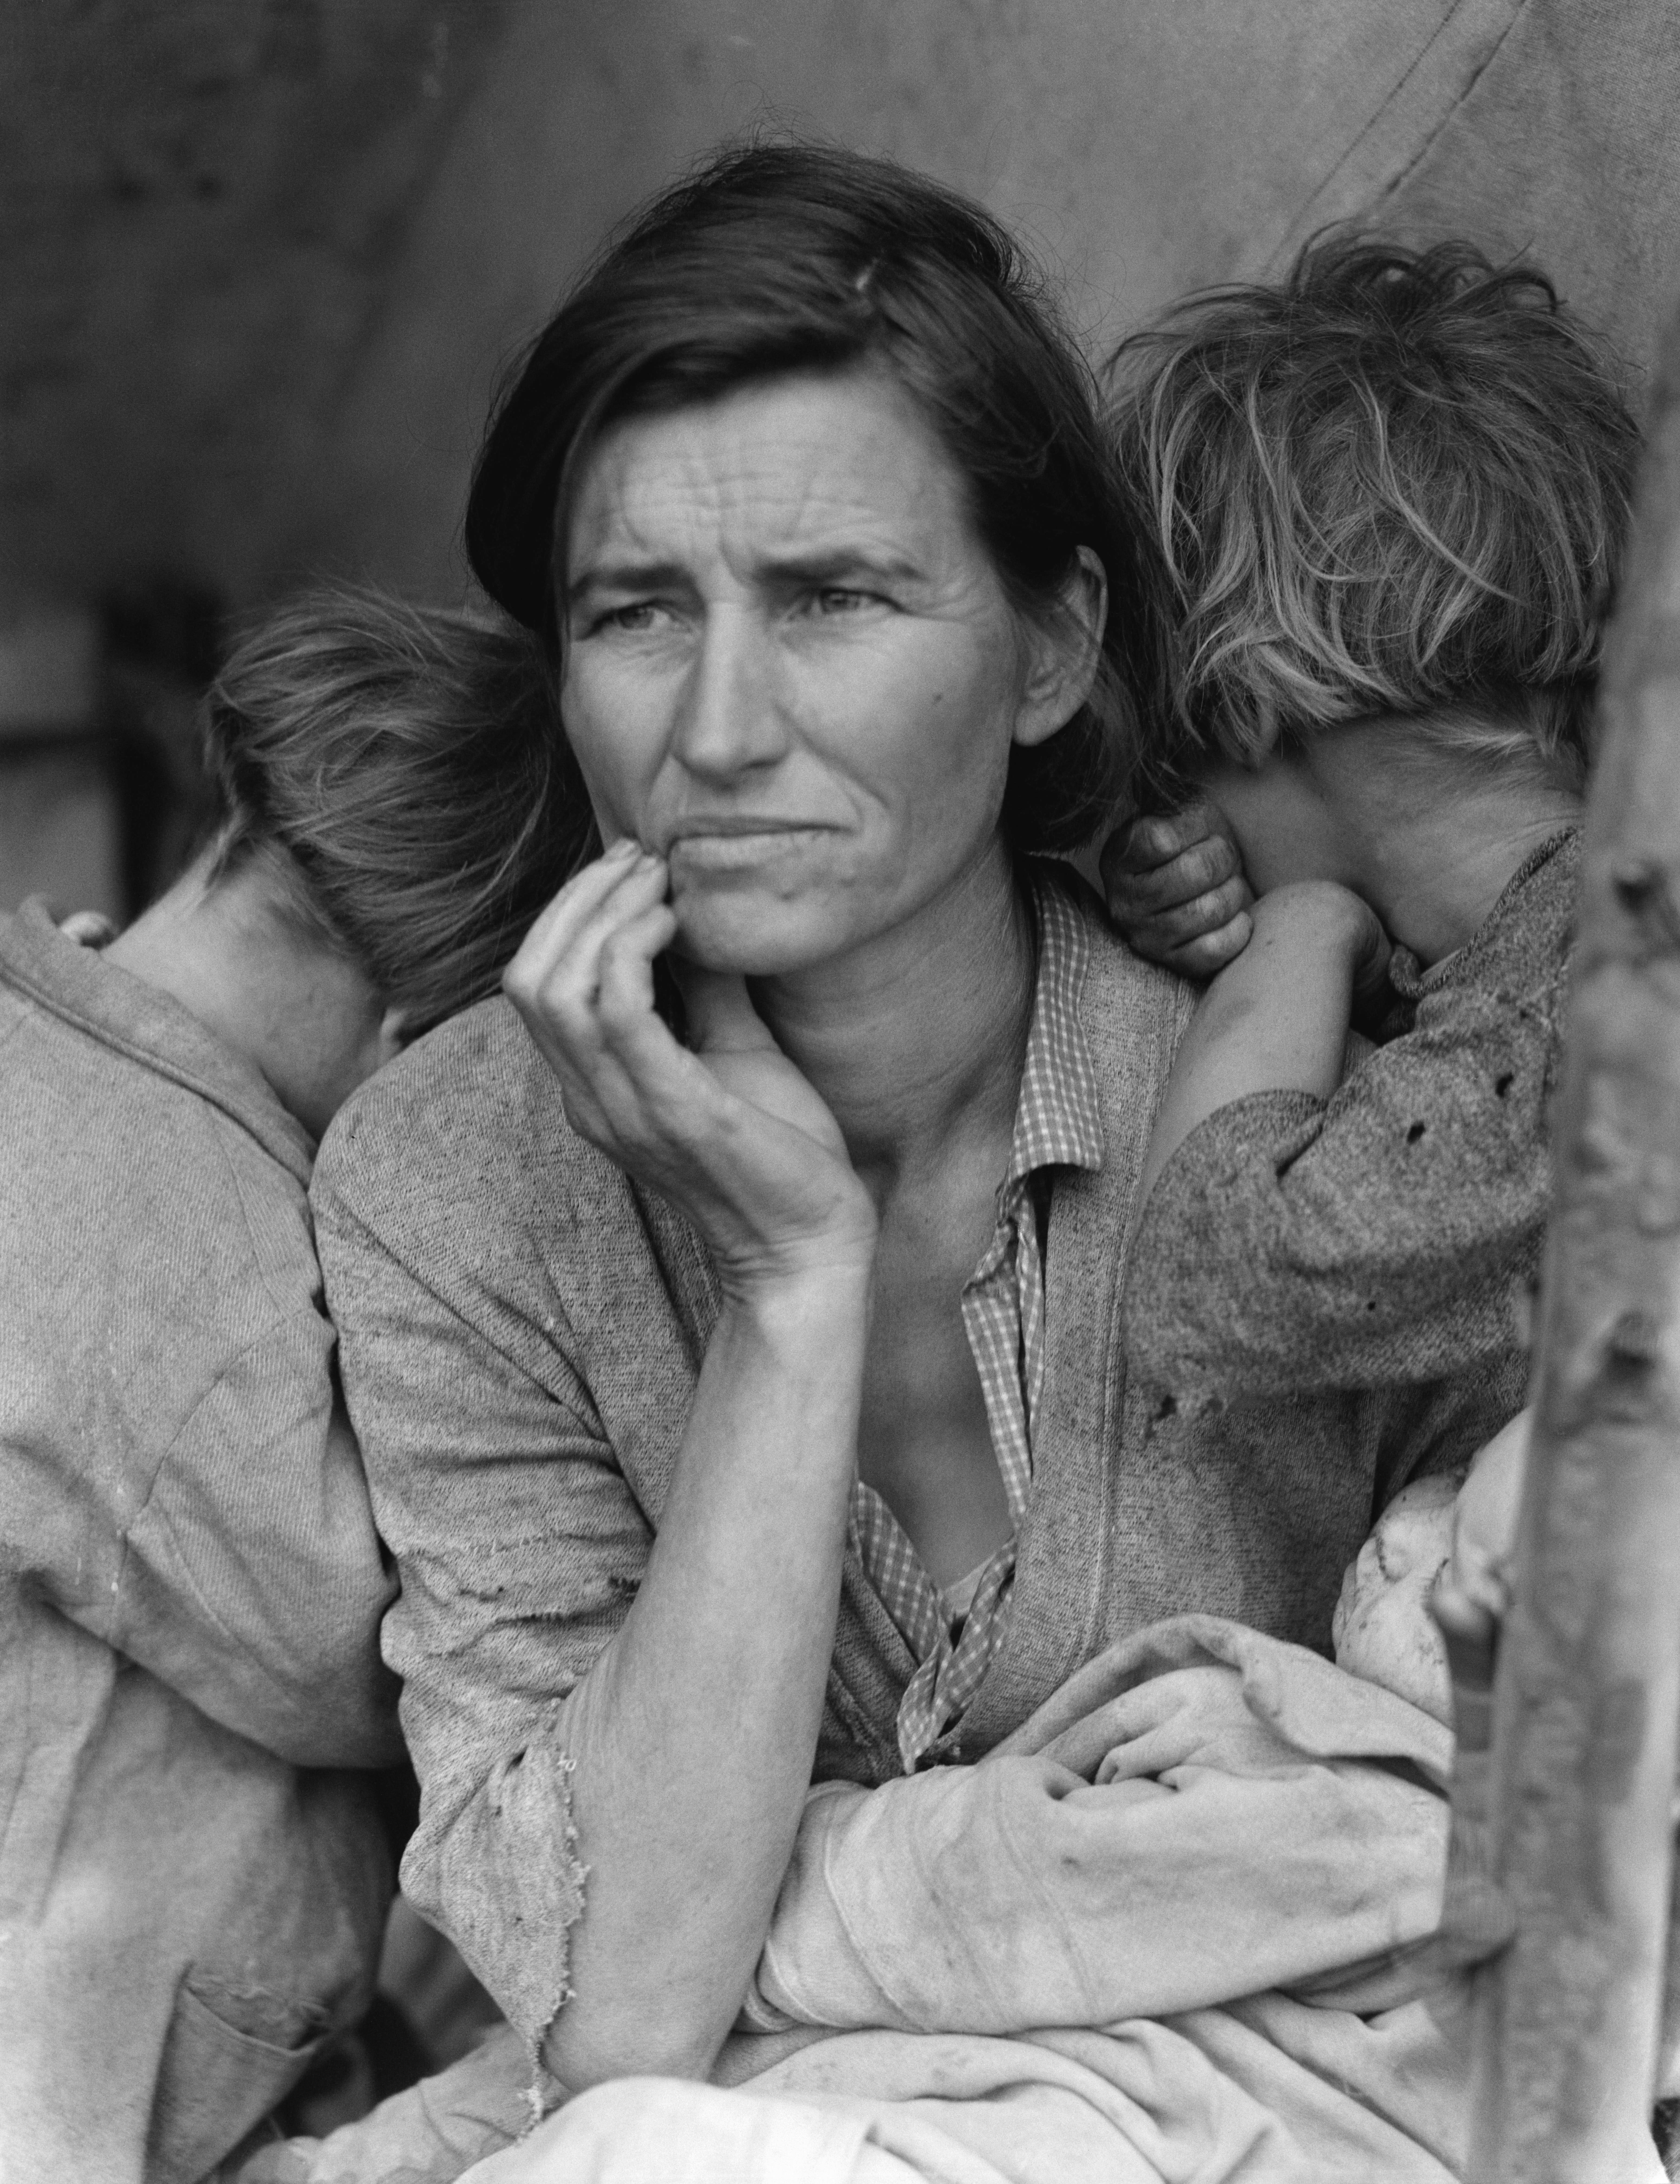 File:Lange-MigrantMother02.jpg - Wikipedia, the free encyclopedia